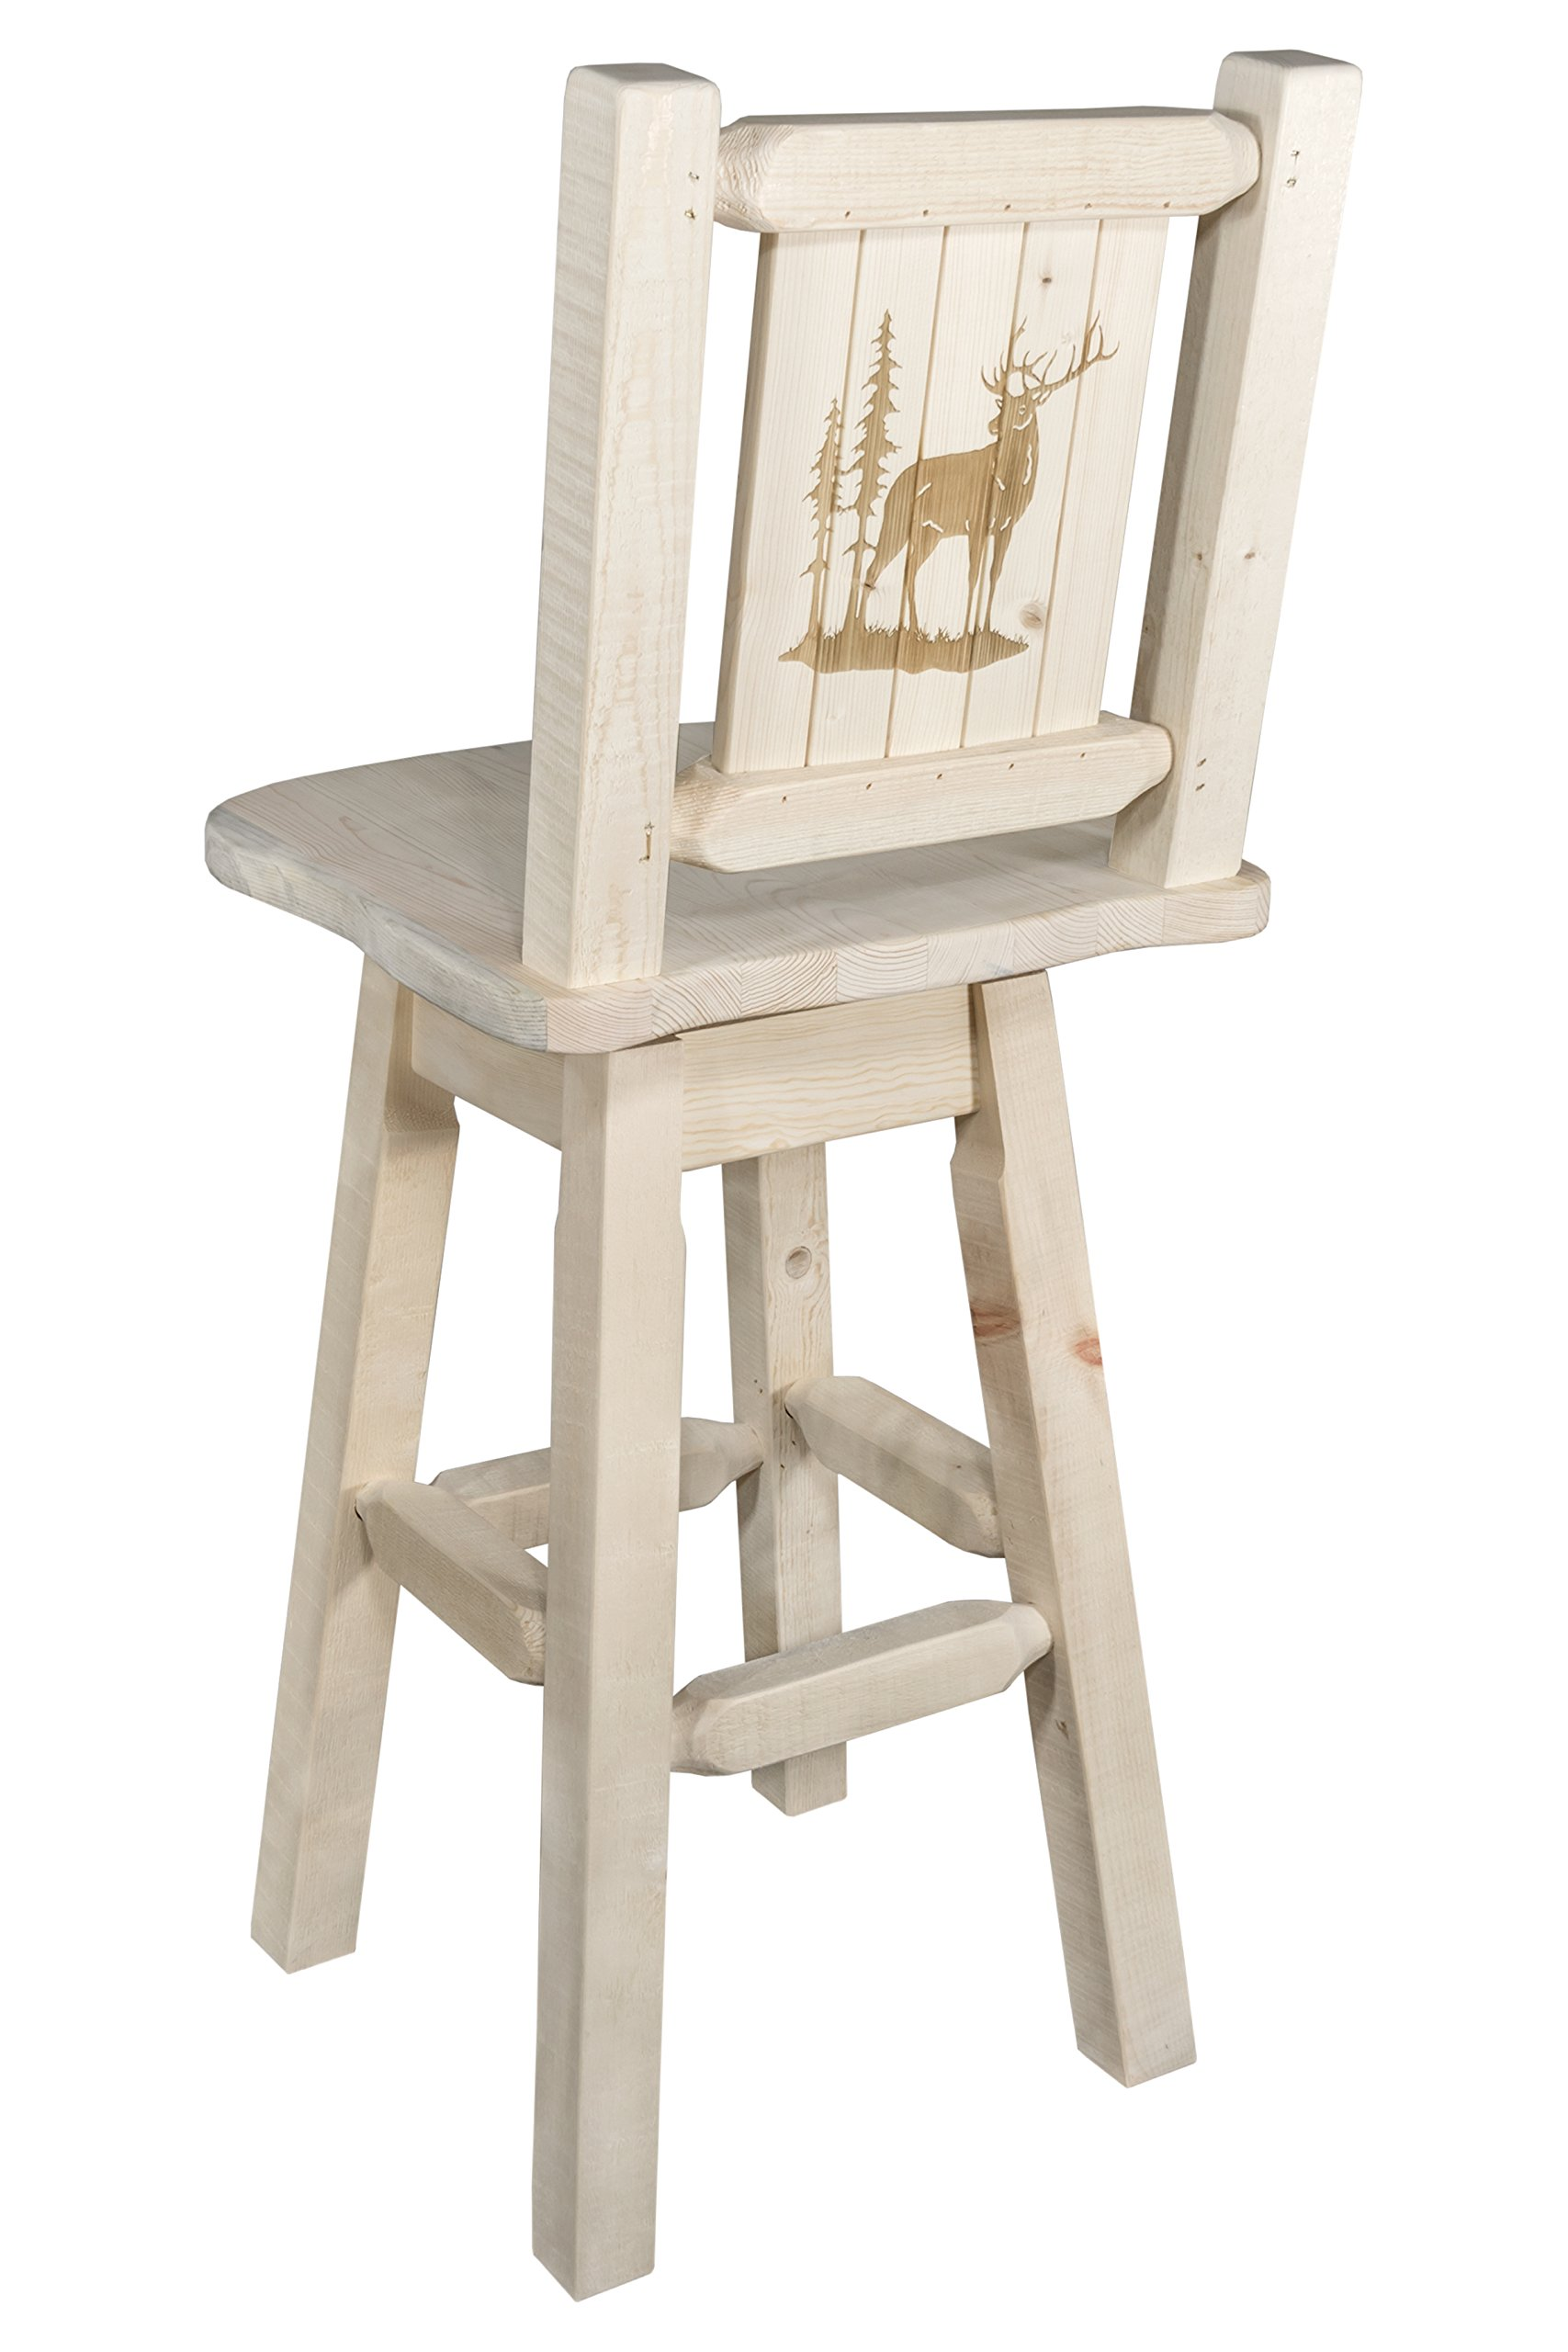 Montana Woodworks Homestead Collection Barstool with Back & Swivel, Laser Engraved Elk Design, Clear Lacquer Finish